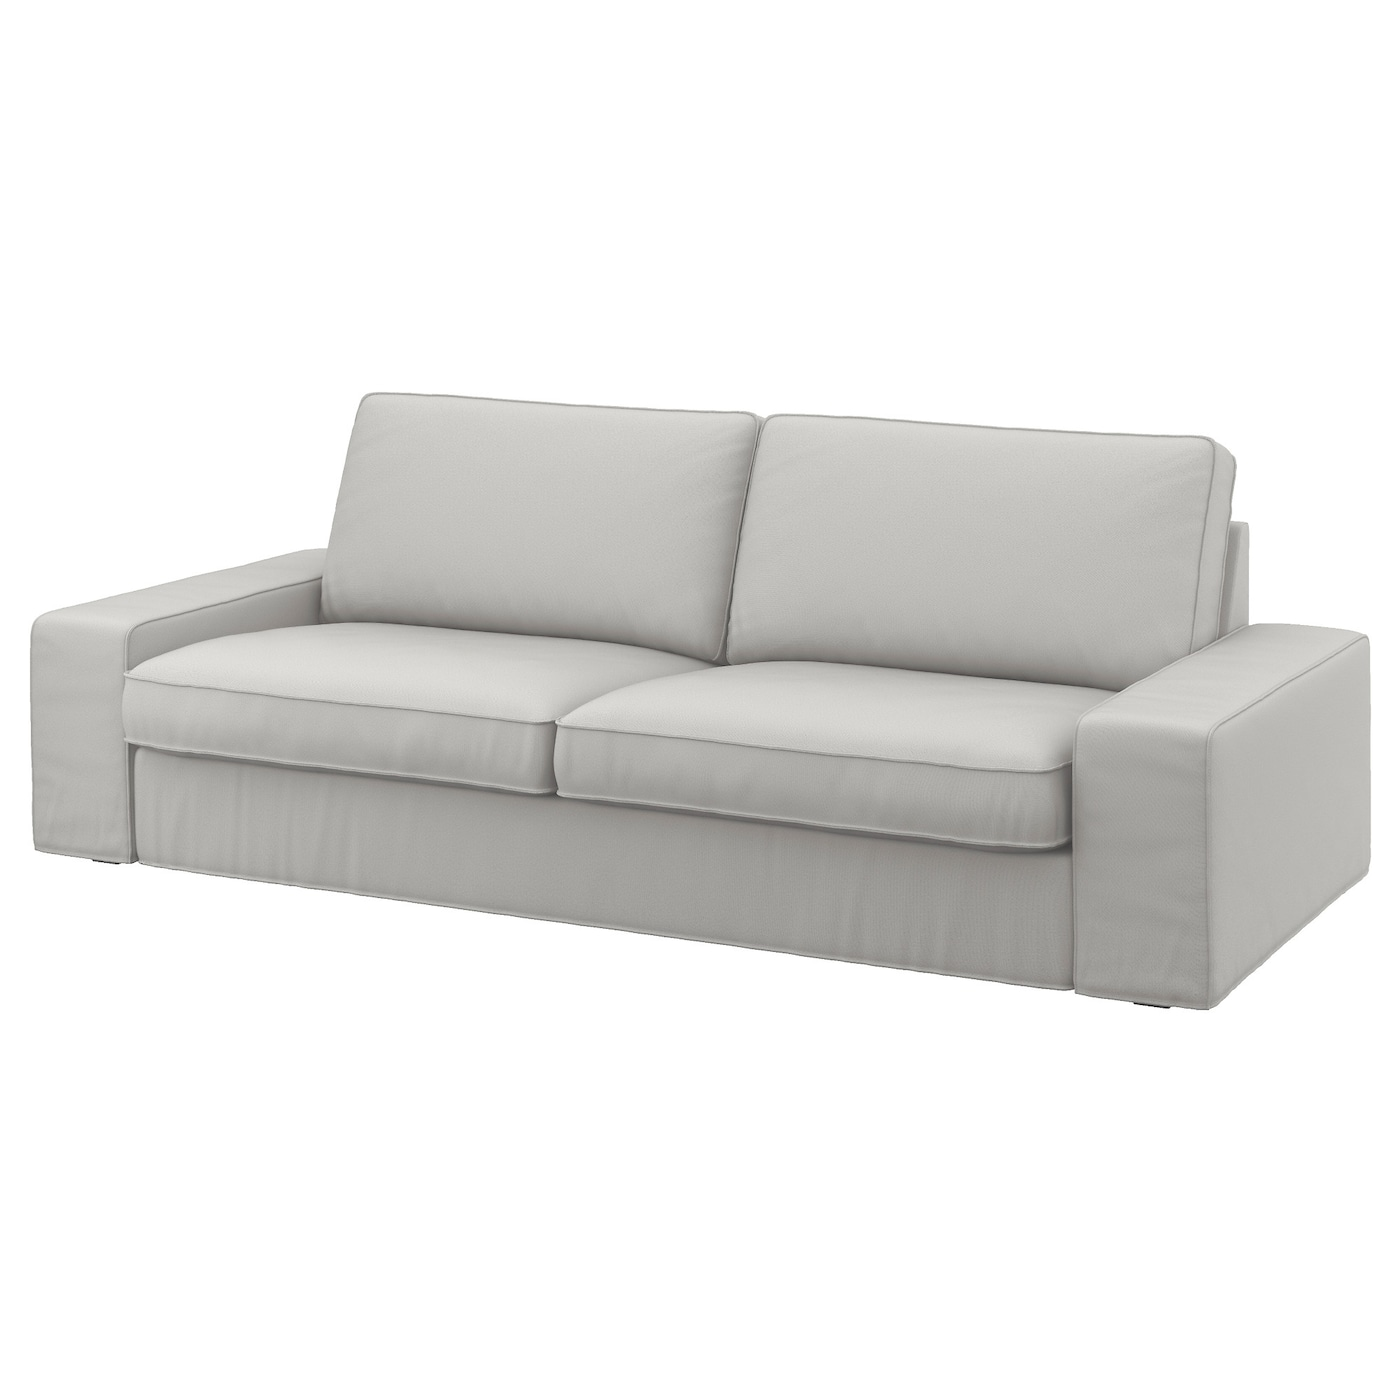 Kivik three seat sofa ramna light grey ikea for Sofa kivik 3 plazas